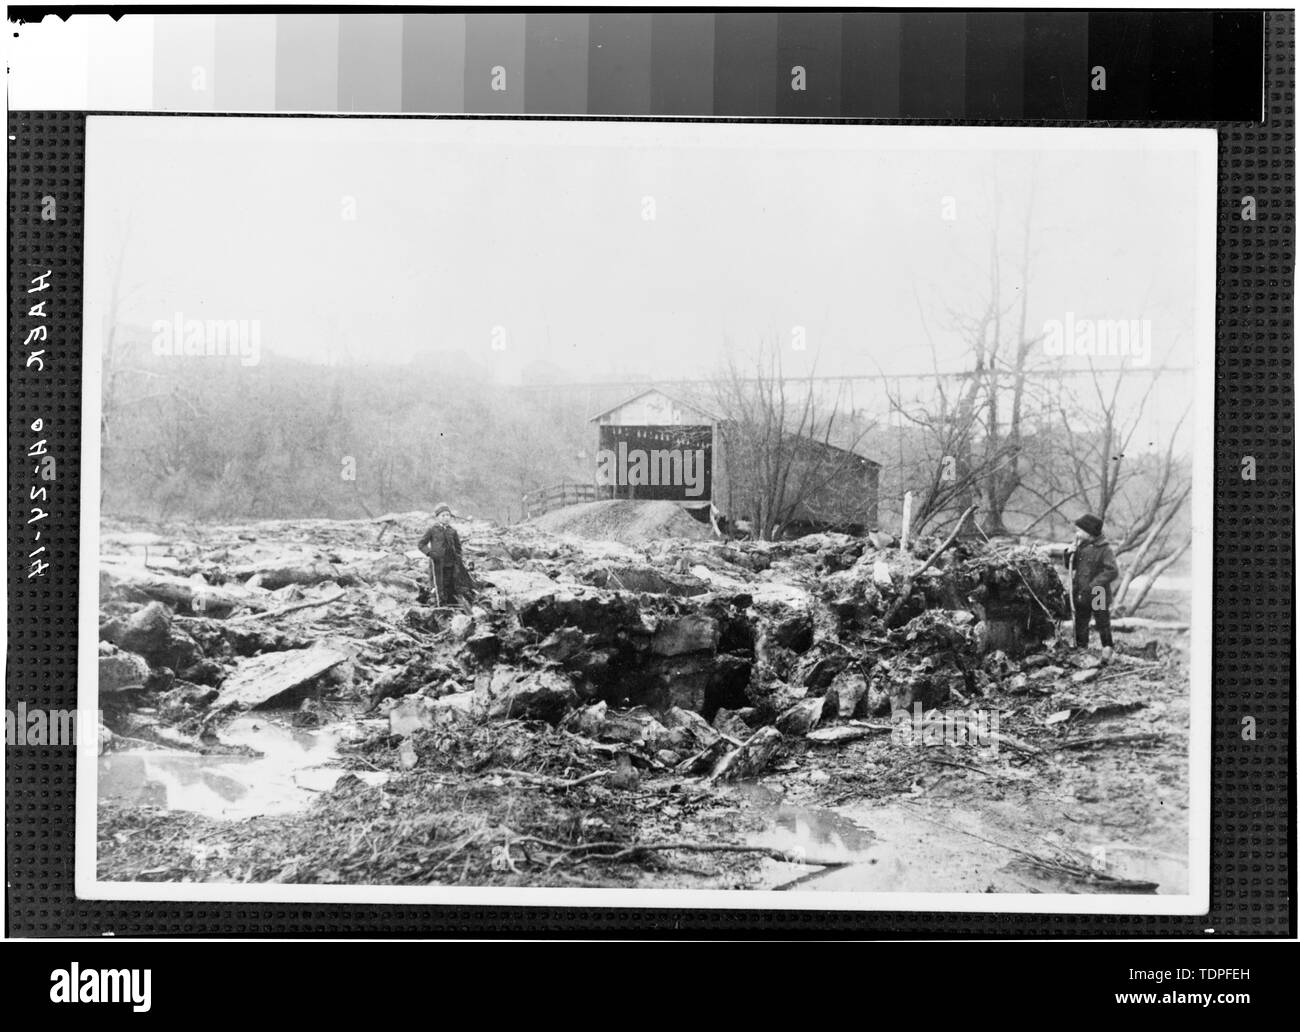 (from collection of Mrs. L.J. Fargo, Lexington, Ohio) showing ASHTABULA RIVER VALLEY FLOOR, 1896. - Forty-sixth Street Bridge, Spanning Ashtabula River, Ashtabula, Ashtabula County, OH - Stock Image